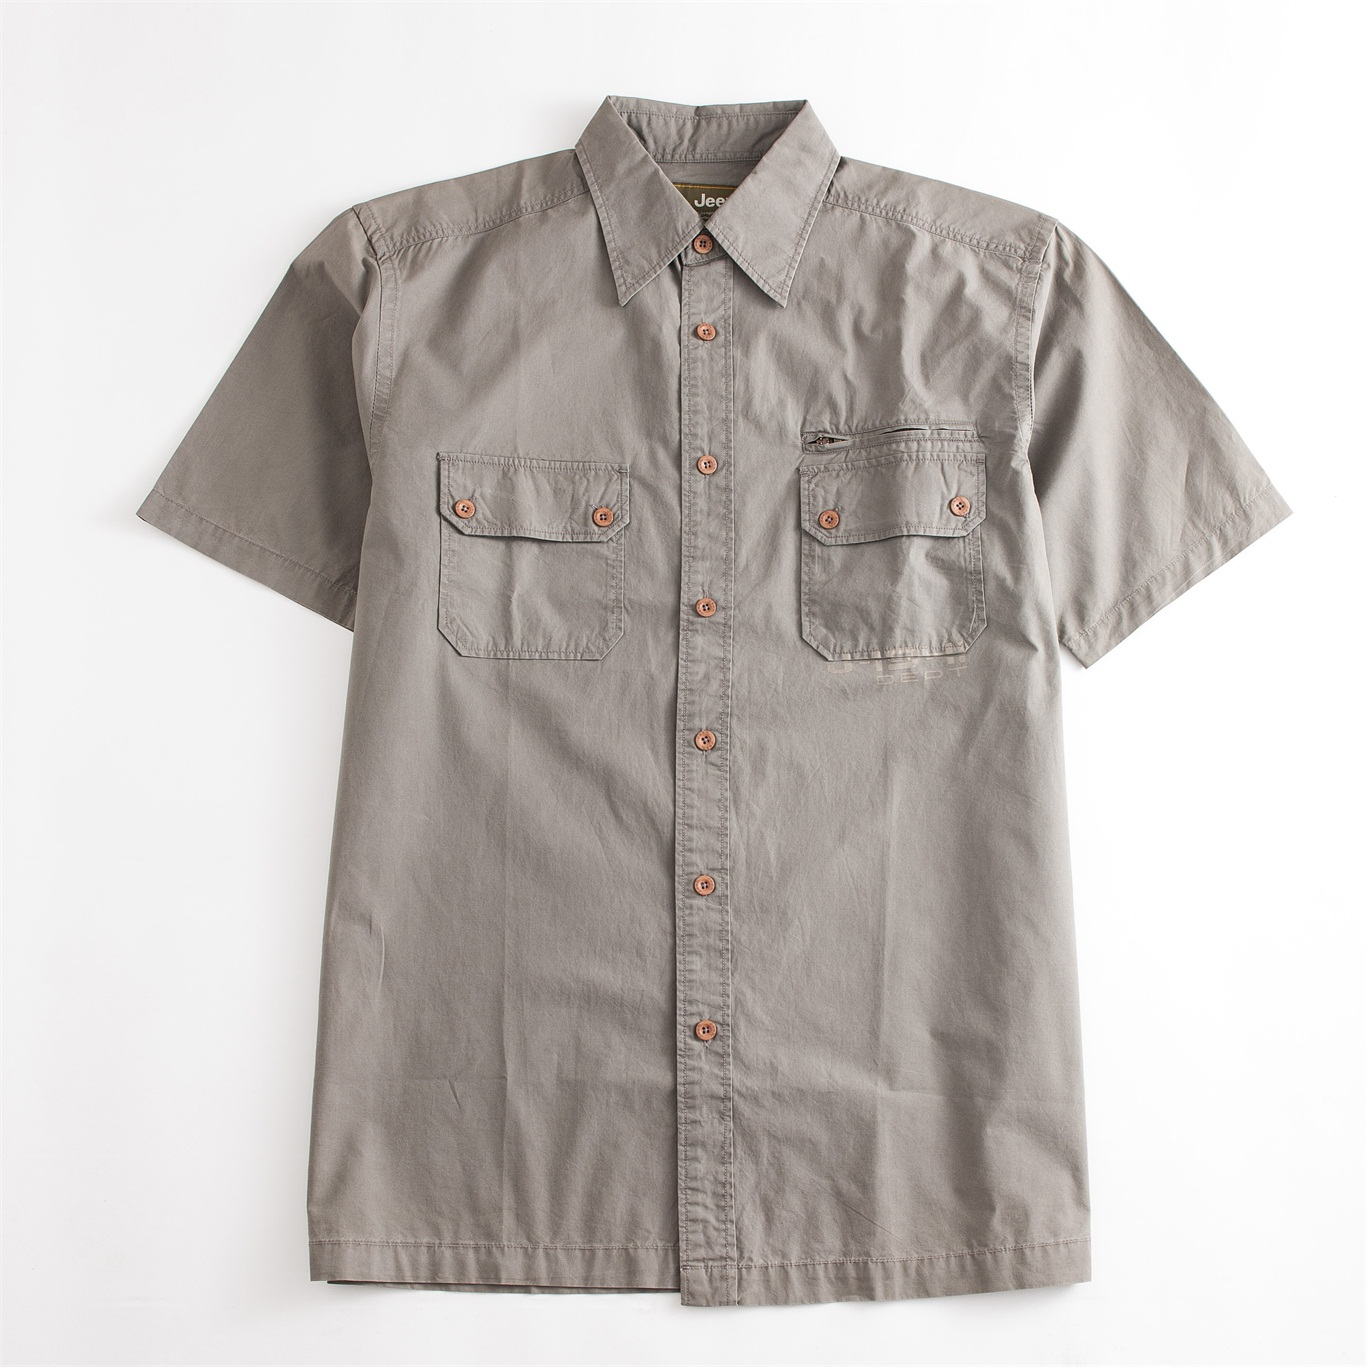 Skin-friendly Short Sleeve Regular Fit Shirt